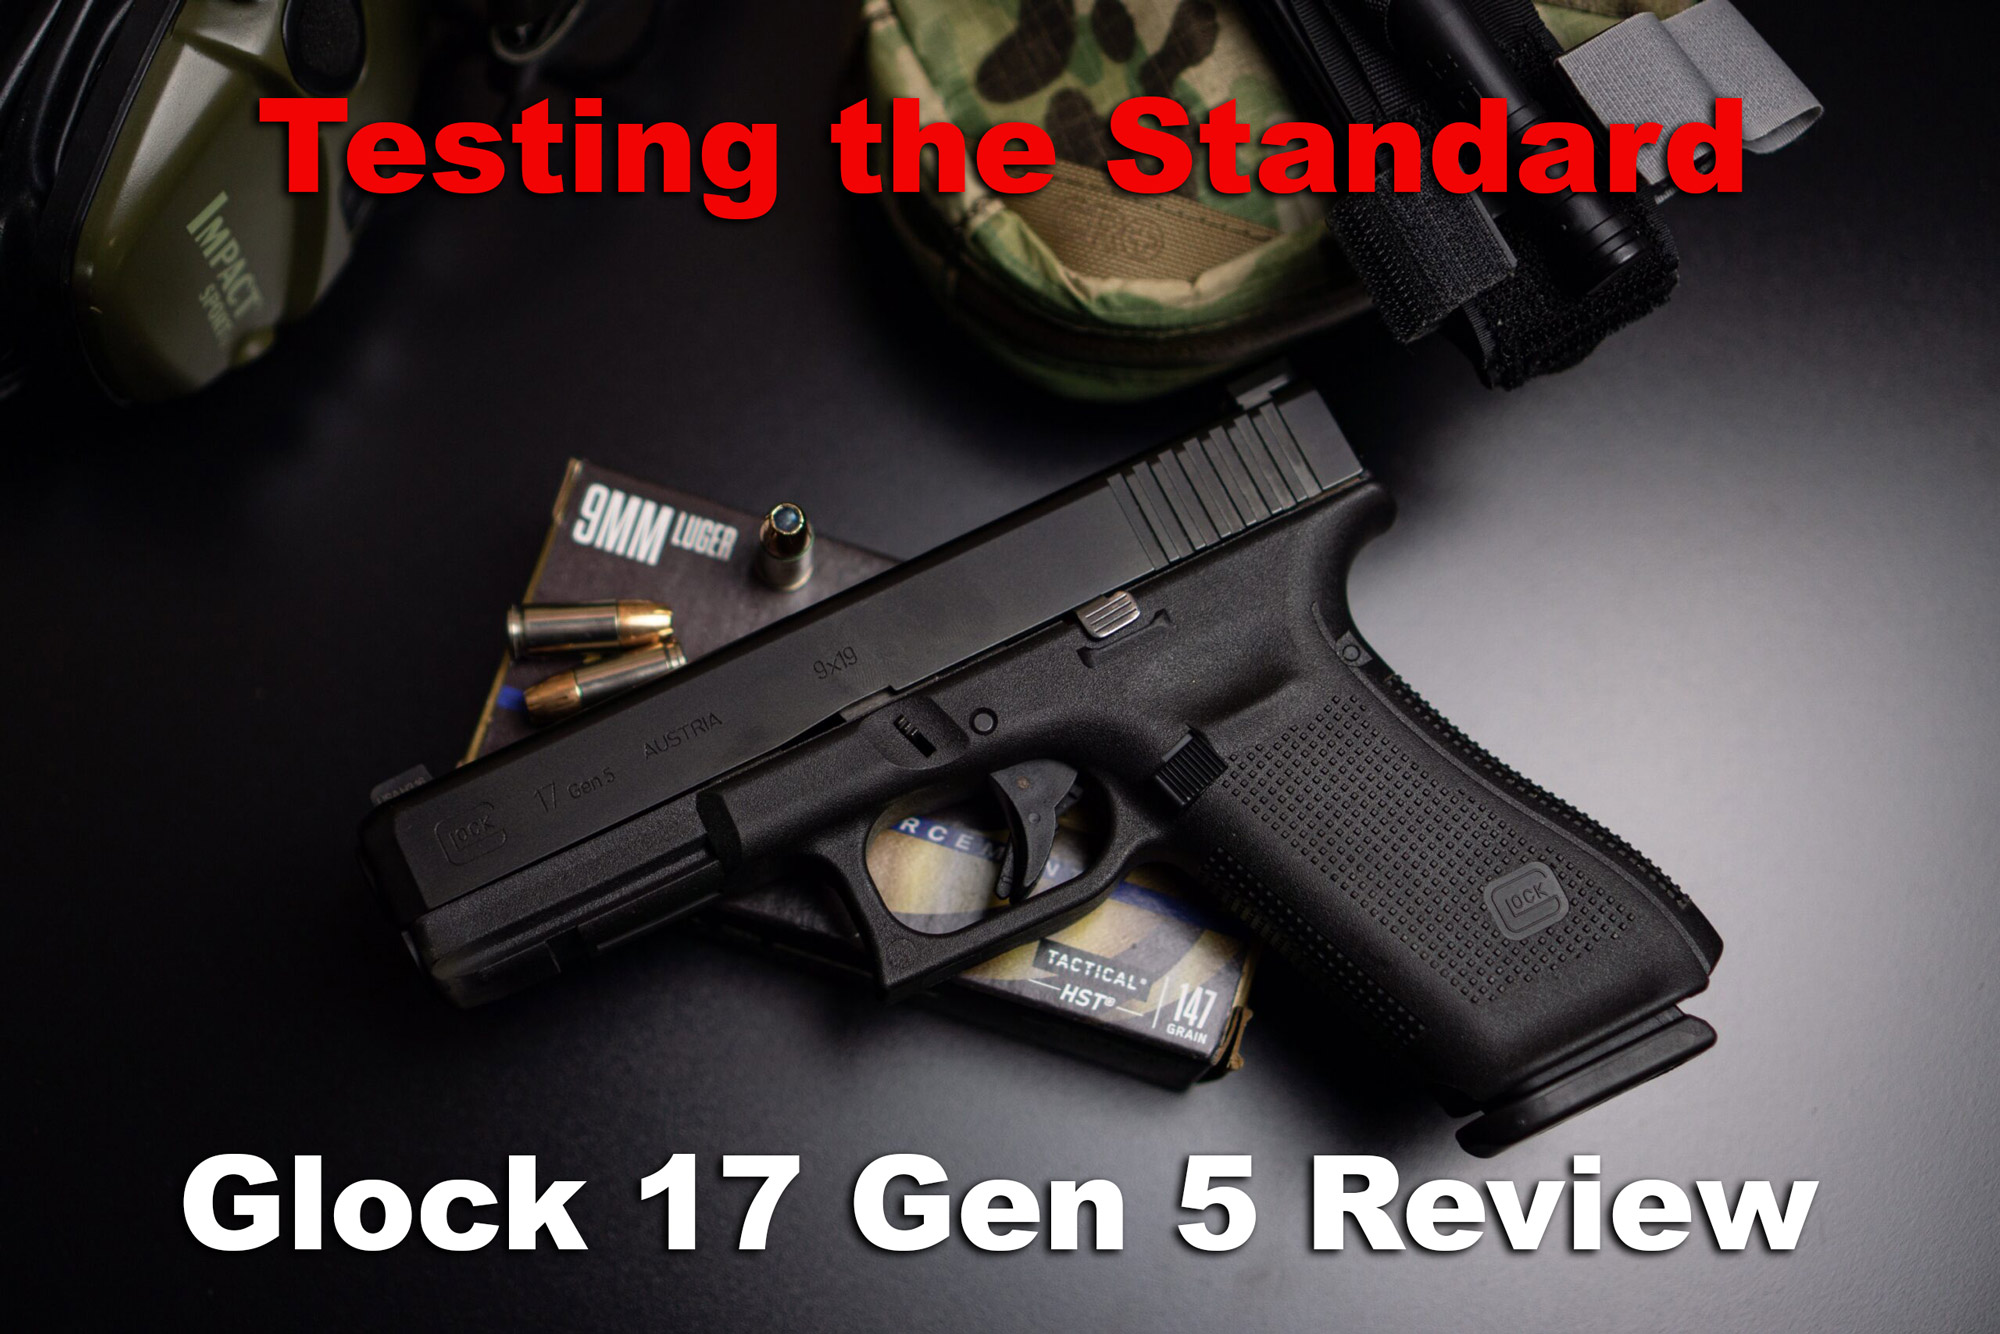 Glock 17 Gen 5 review pistol with ammo on a table